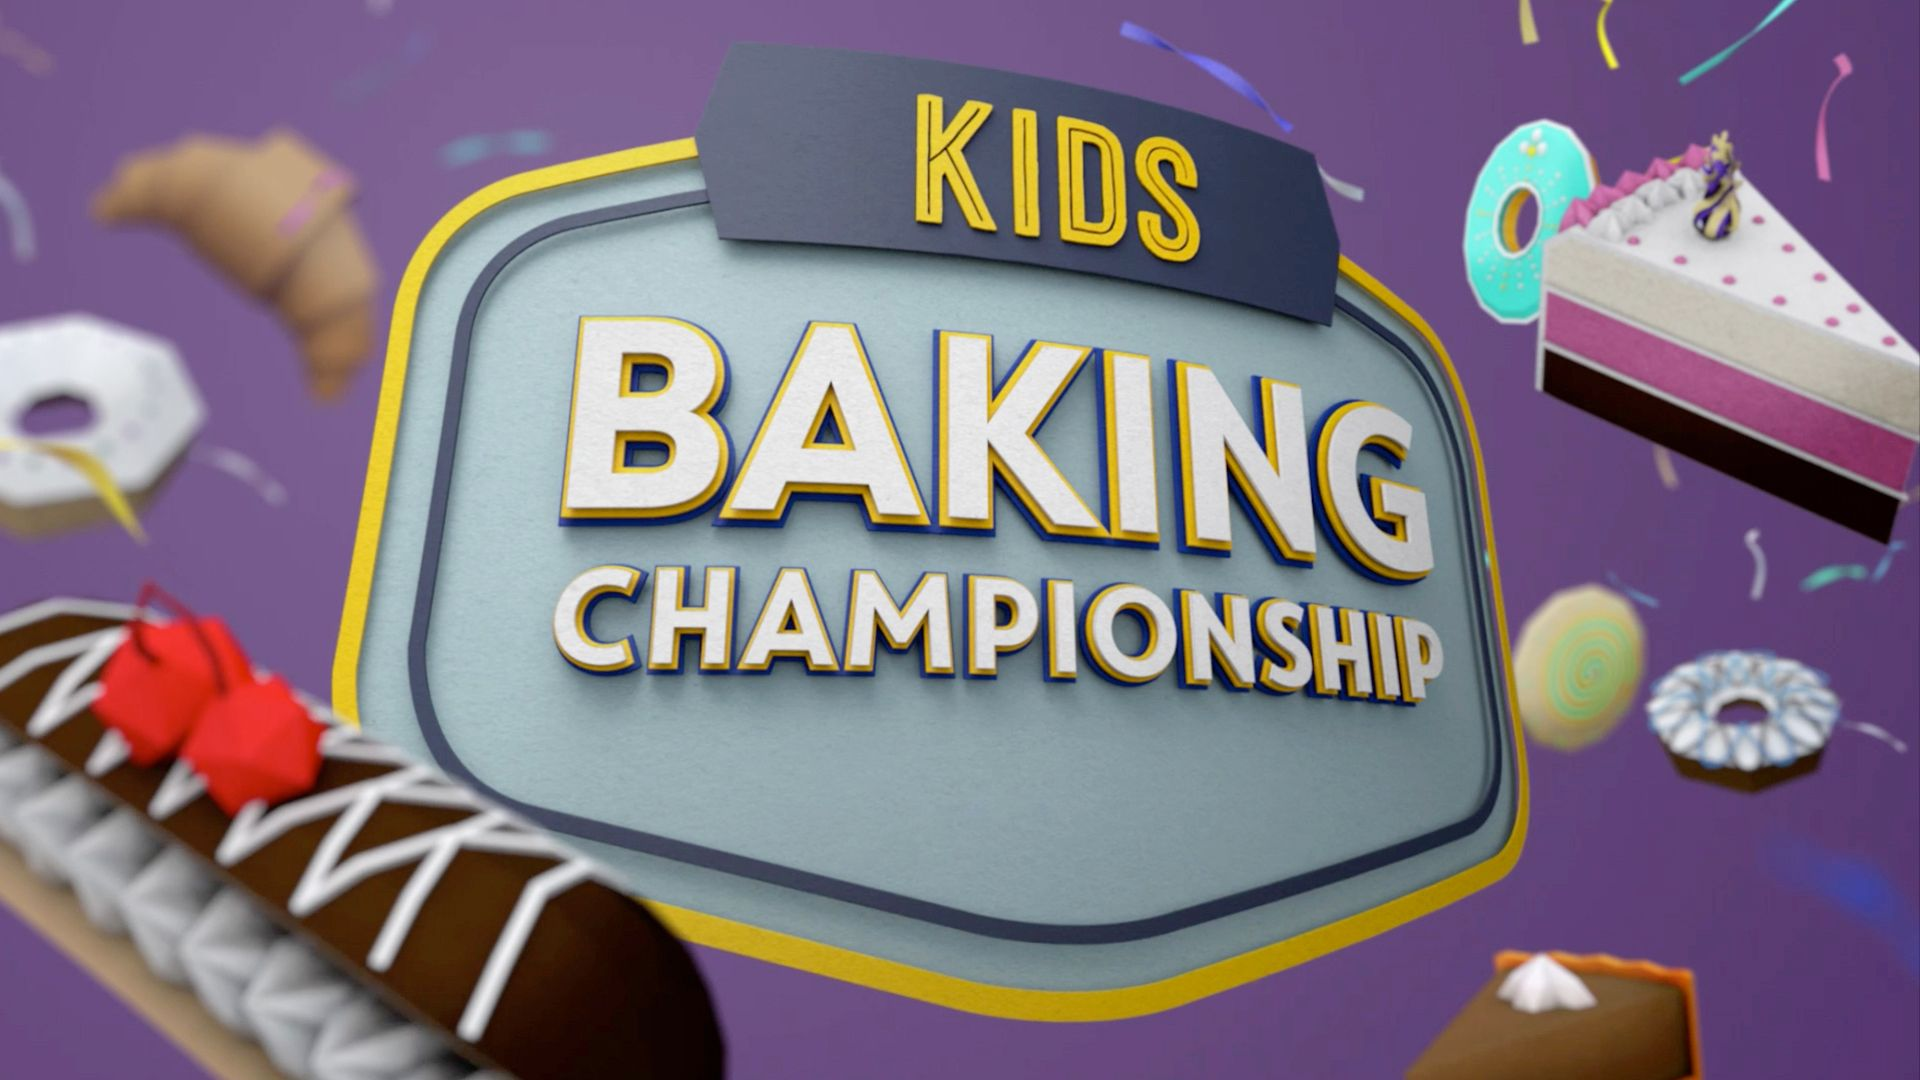 Spring Baking Championship (2015) | TV Shows | Pinterest | Bobby and TVs